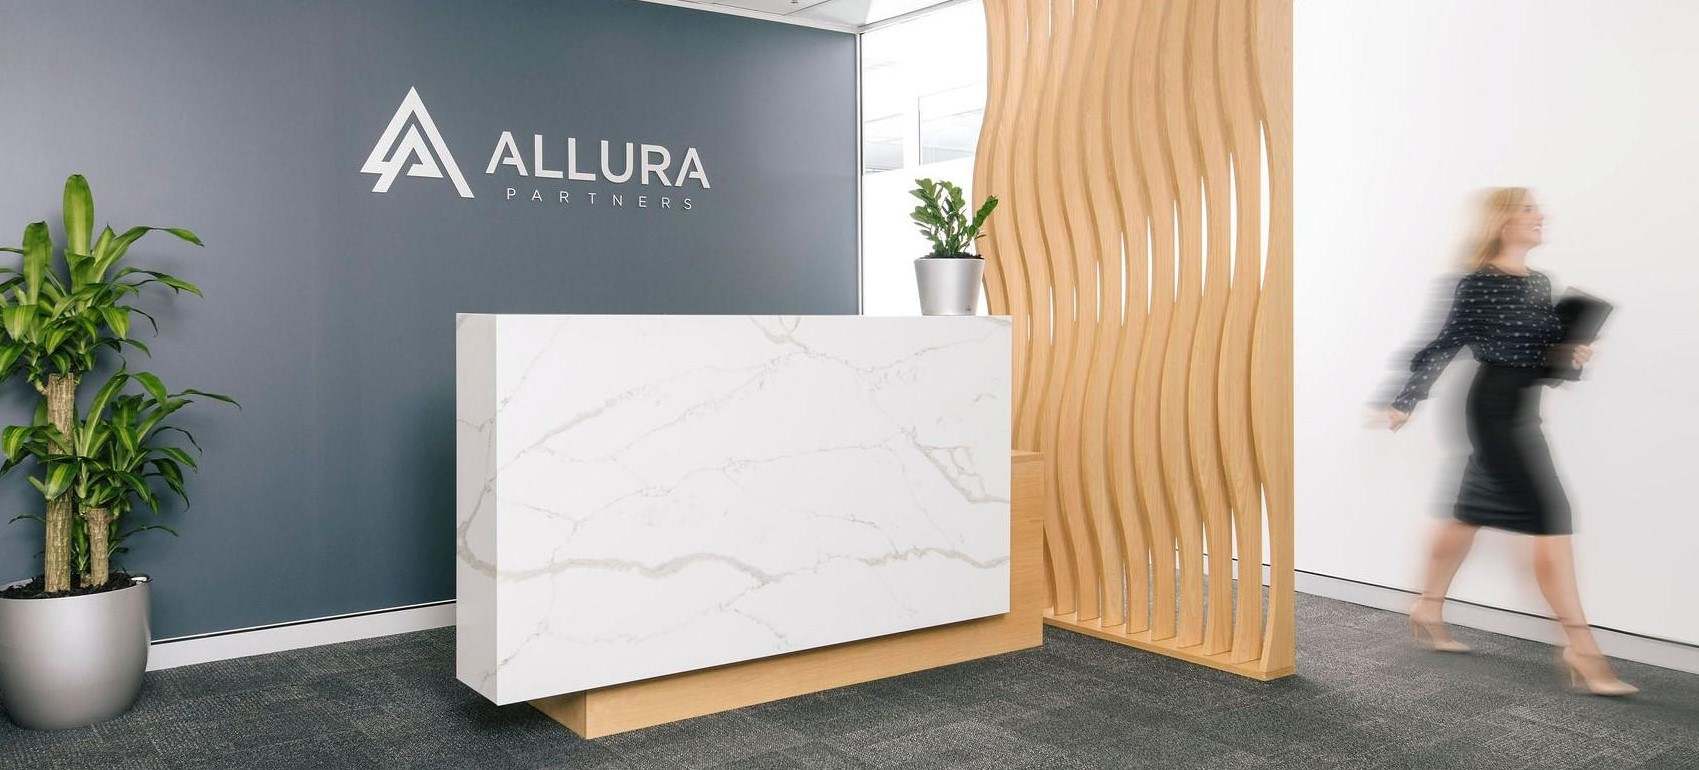 Allura Partners Executive Search Recruitment Temporary Accounting Finance Projects Change Insurance